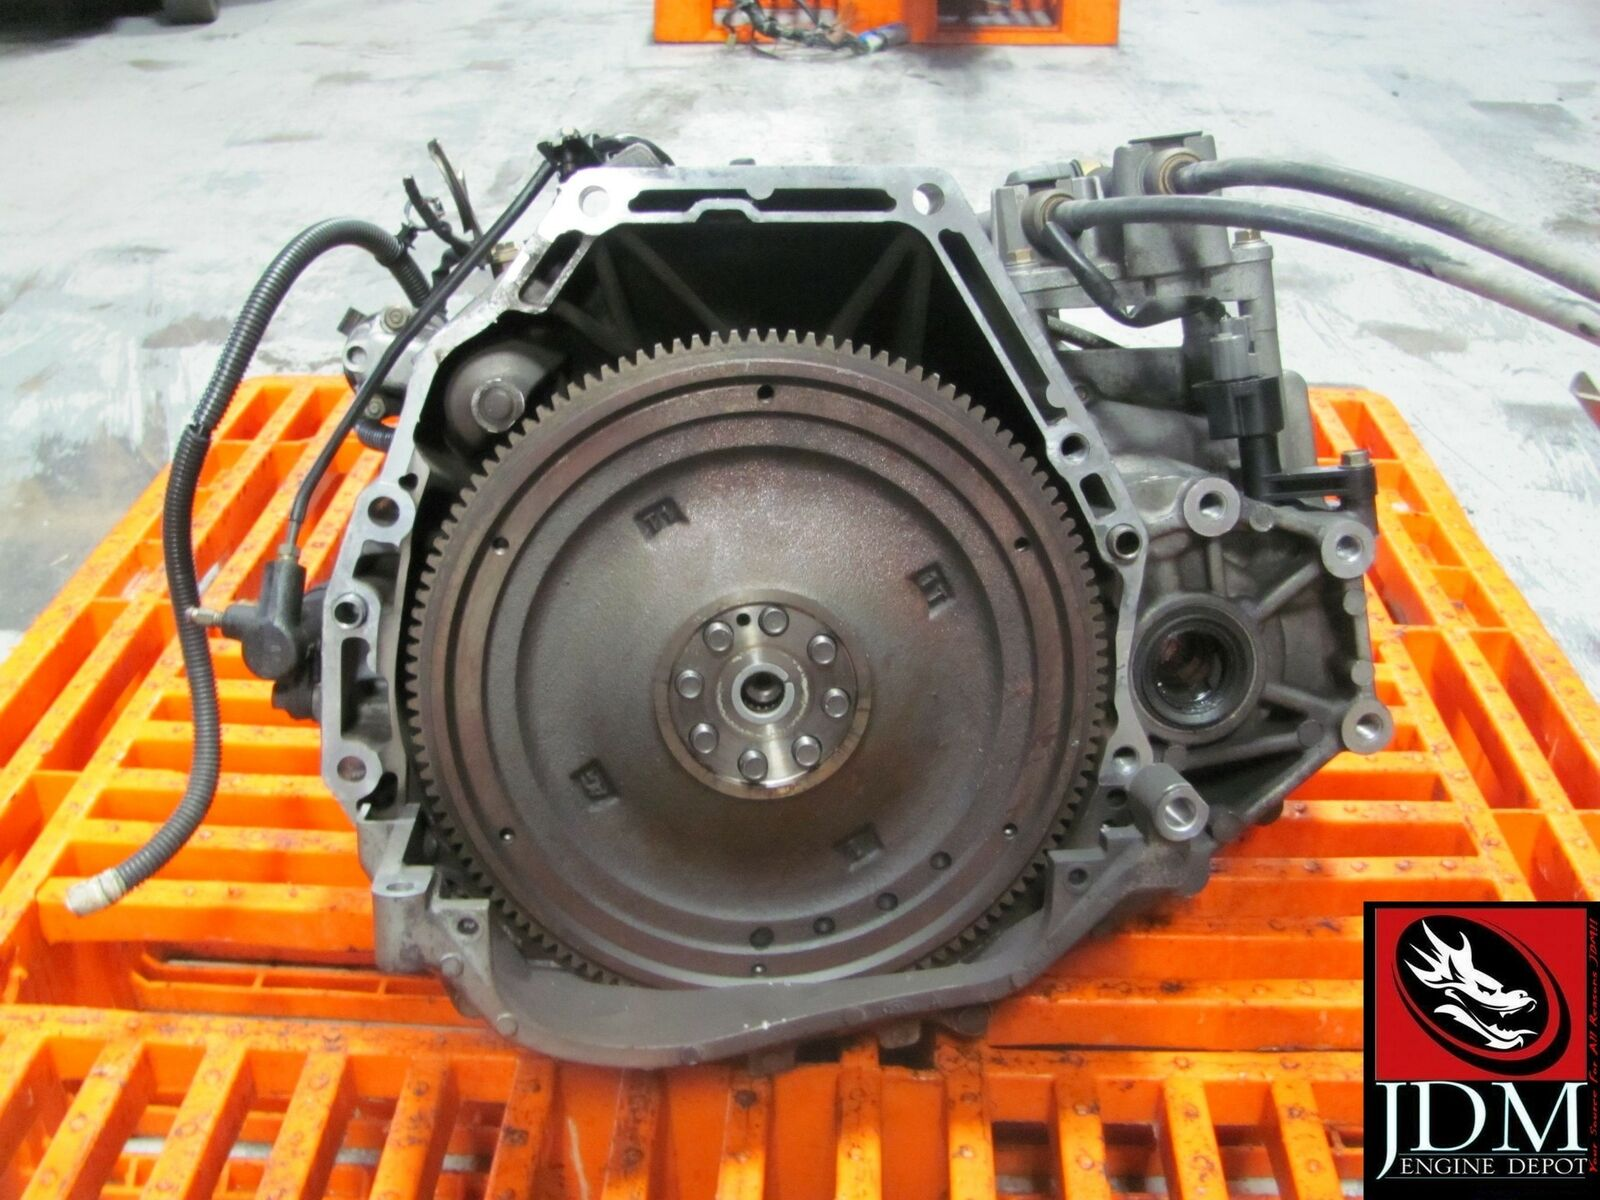 98 02 Honda Accord 2.2L 5-Speed Lsd Manual Transmission Jdm H22A T2W4 1 of  7Only 3 available ...